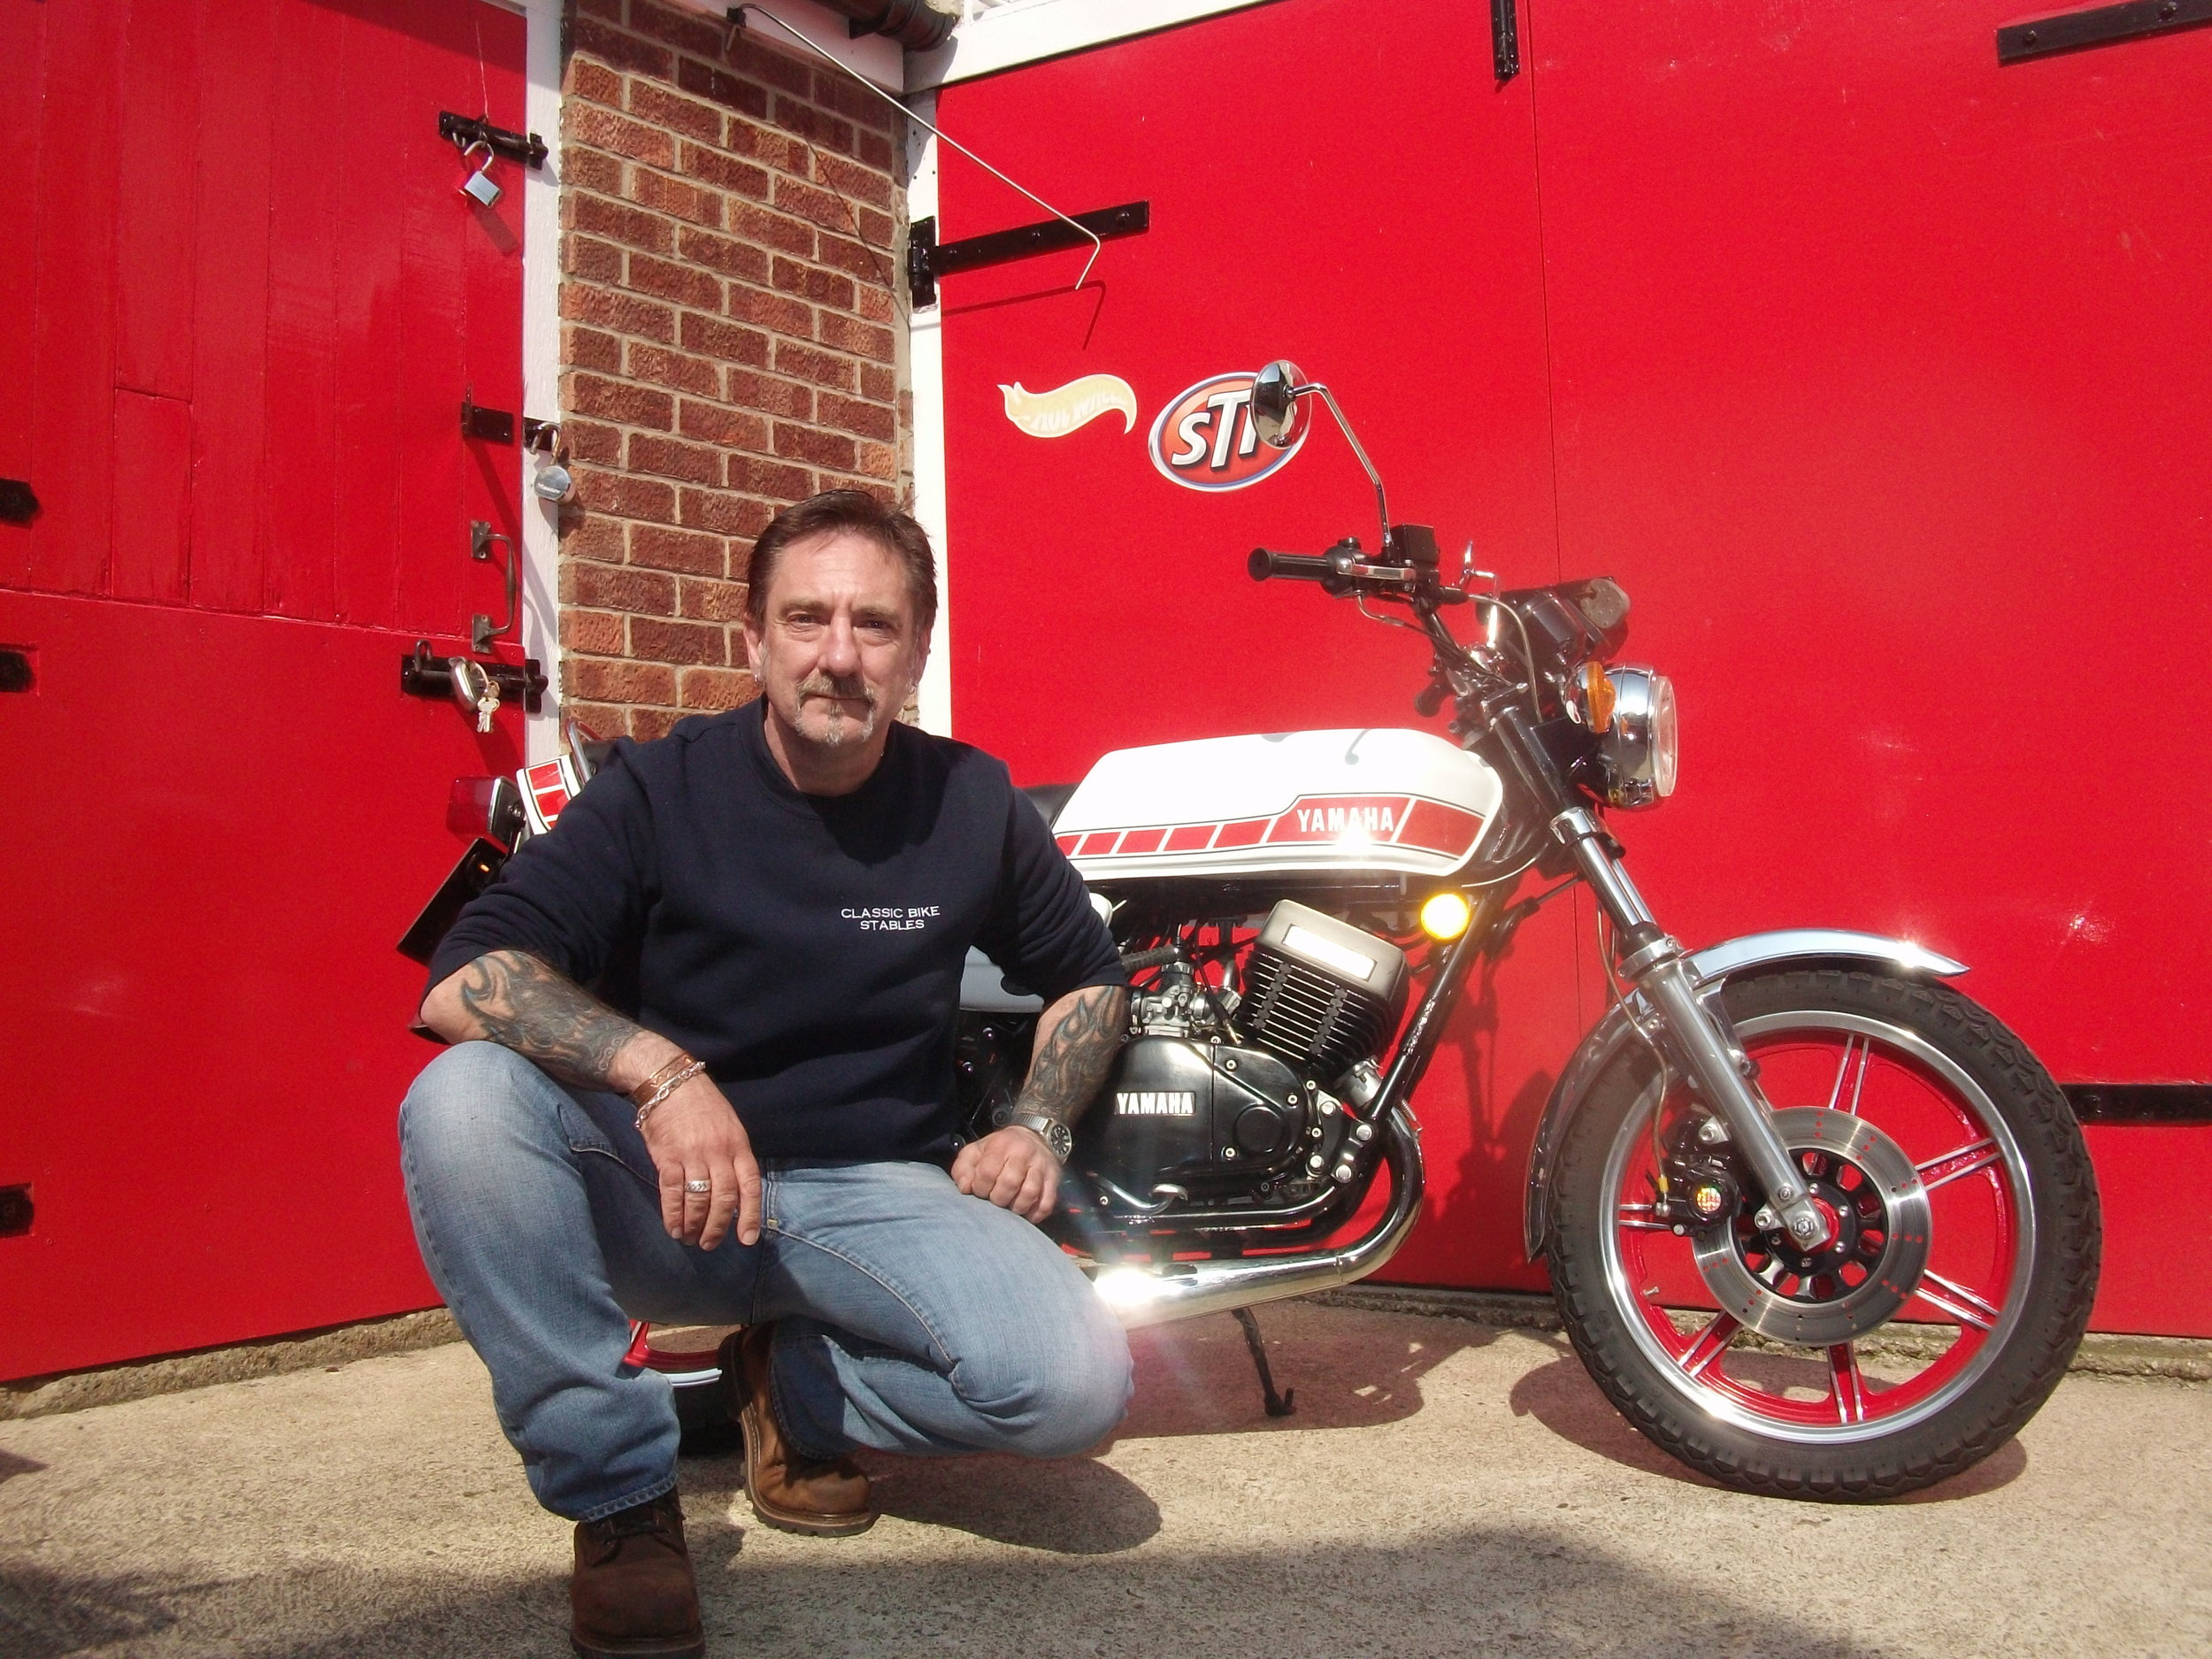 Me & my restored 1979 Yamaha RD400.